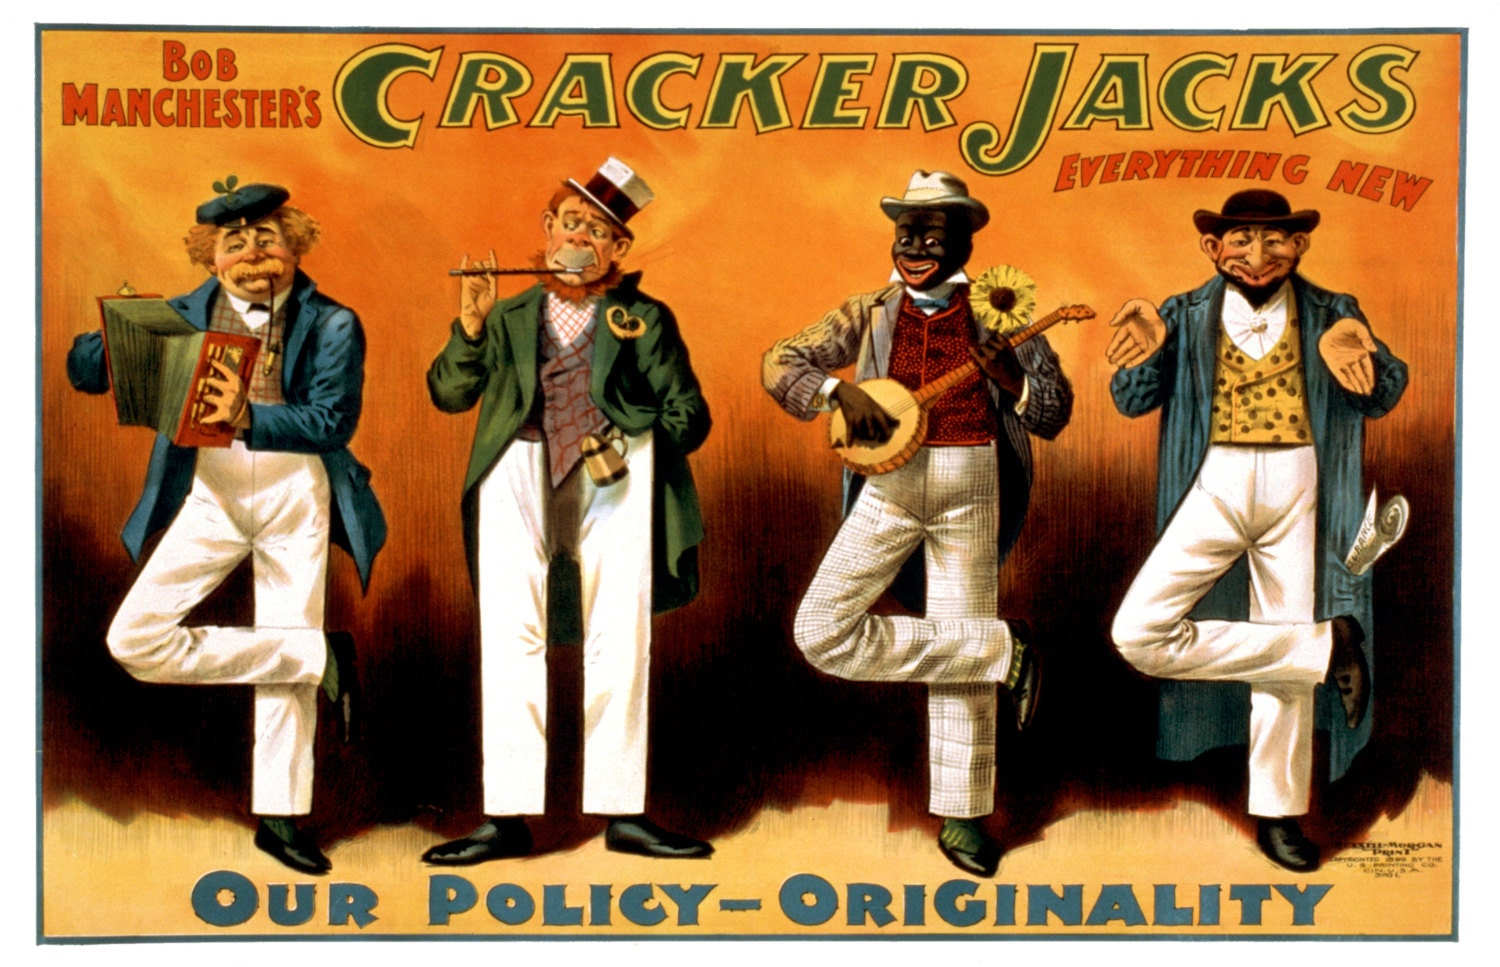 Bob Manchester's, CRACKER JACKS. Everything New. Our policy - Originality, Vaudeville Poster (1899)